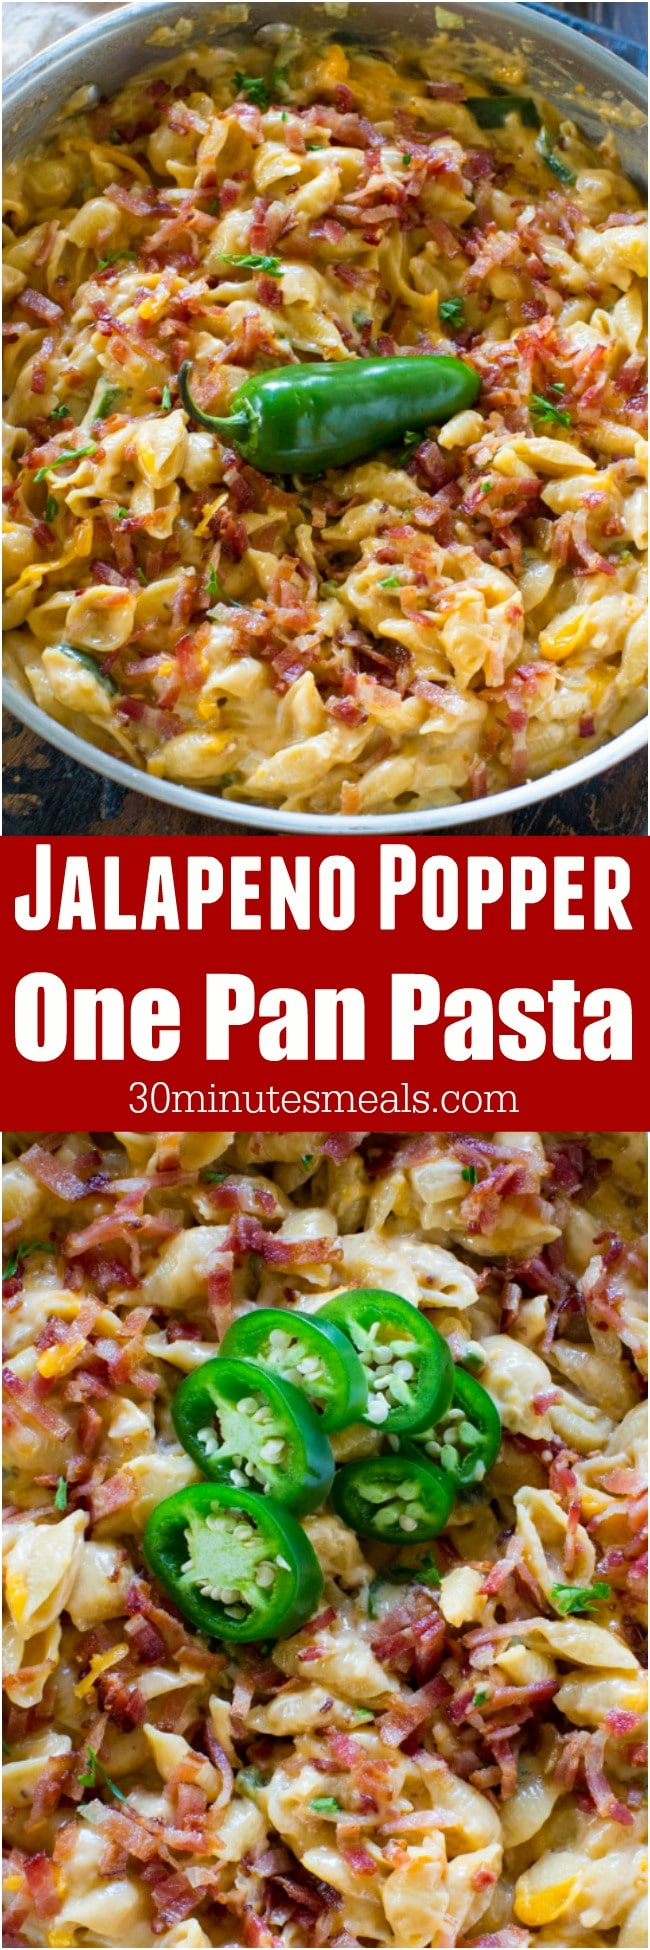 Jalapeño Popper Pasta with bacon, cheddar cheese and cream cheese is tasty, full of flavor and easily made in just one pan.